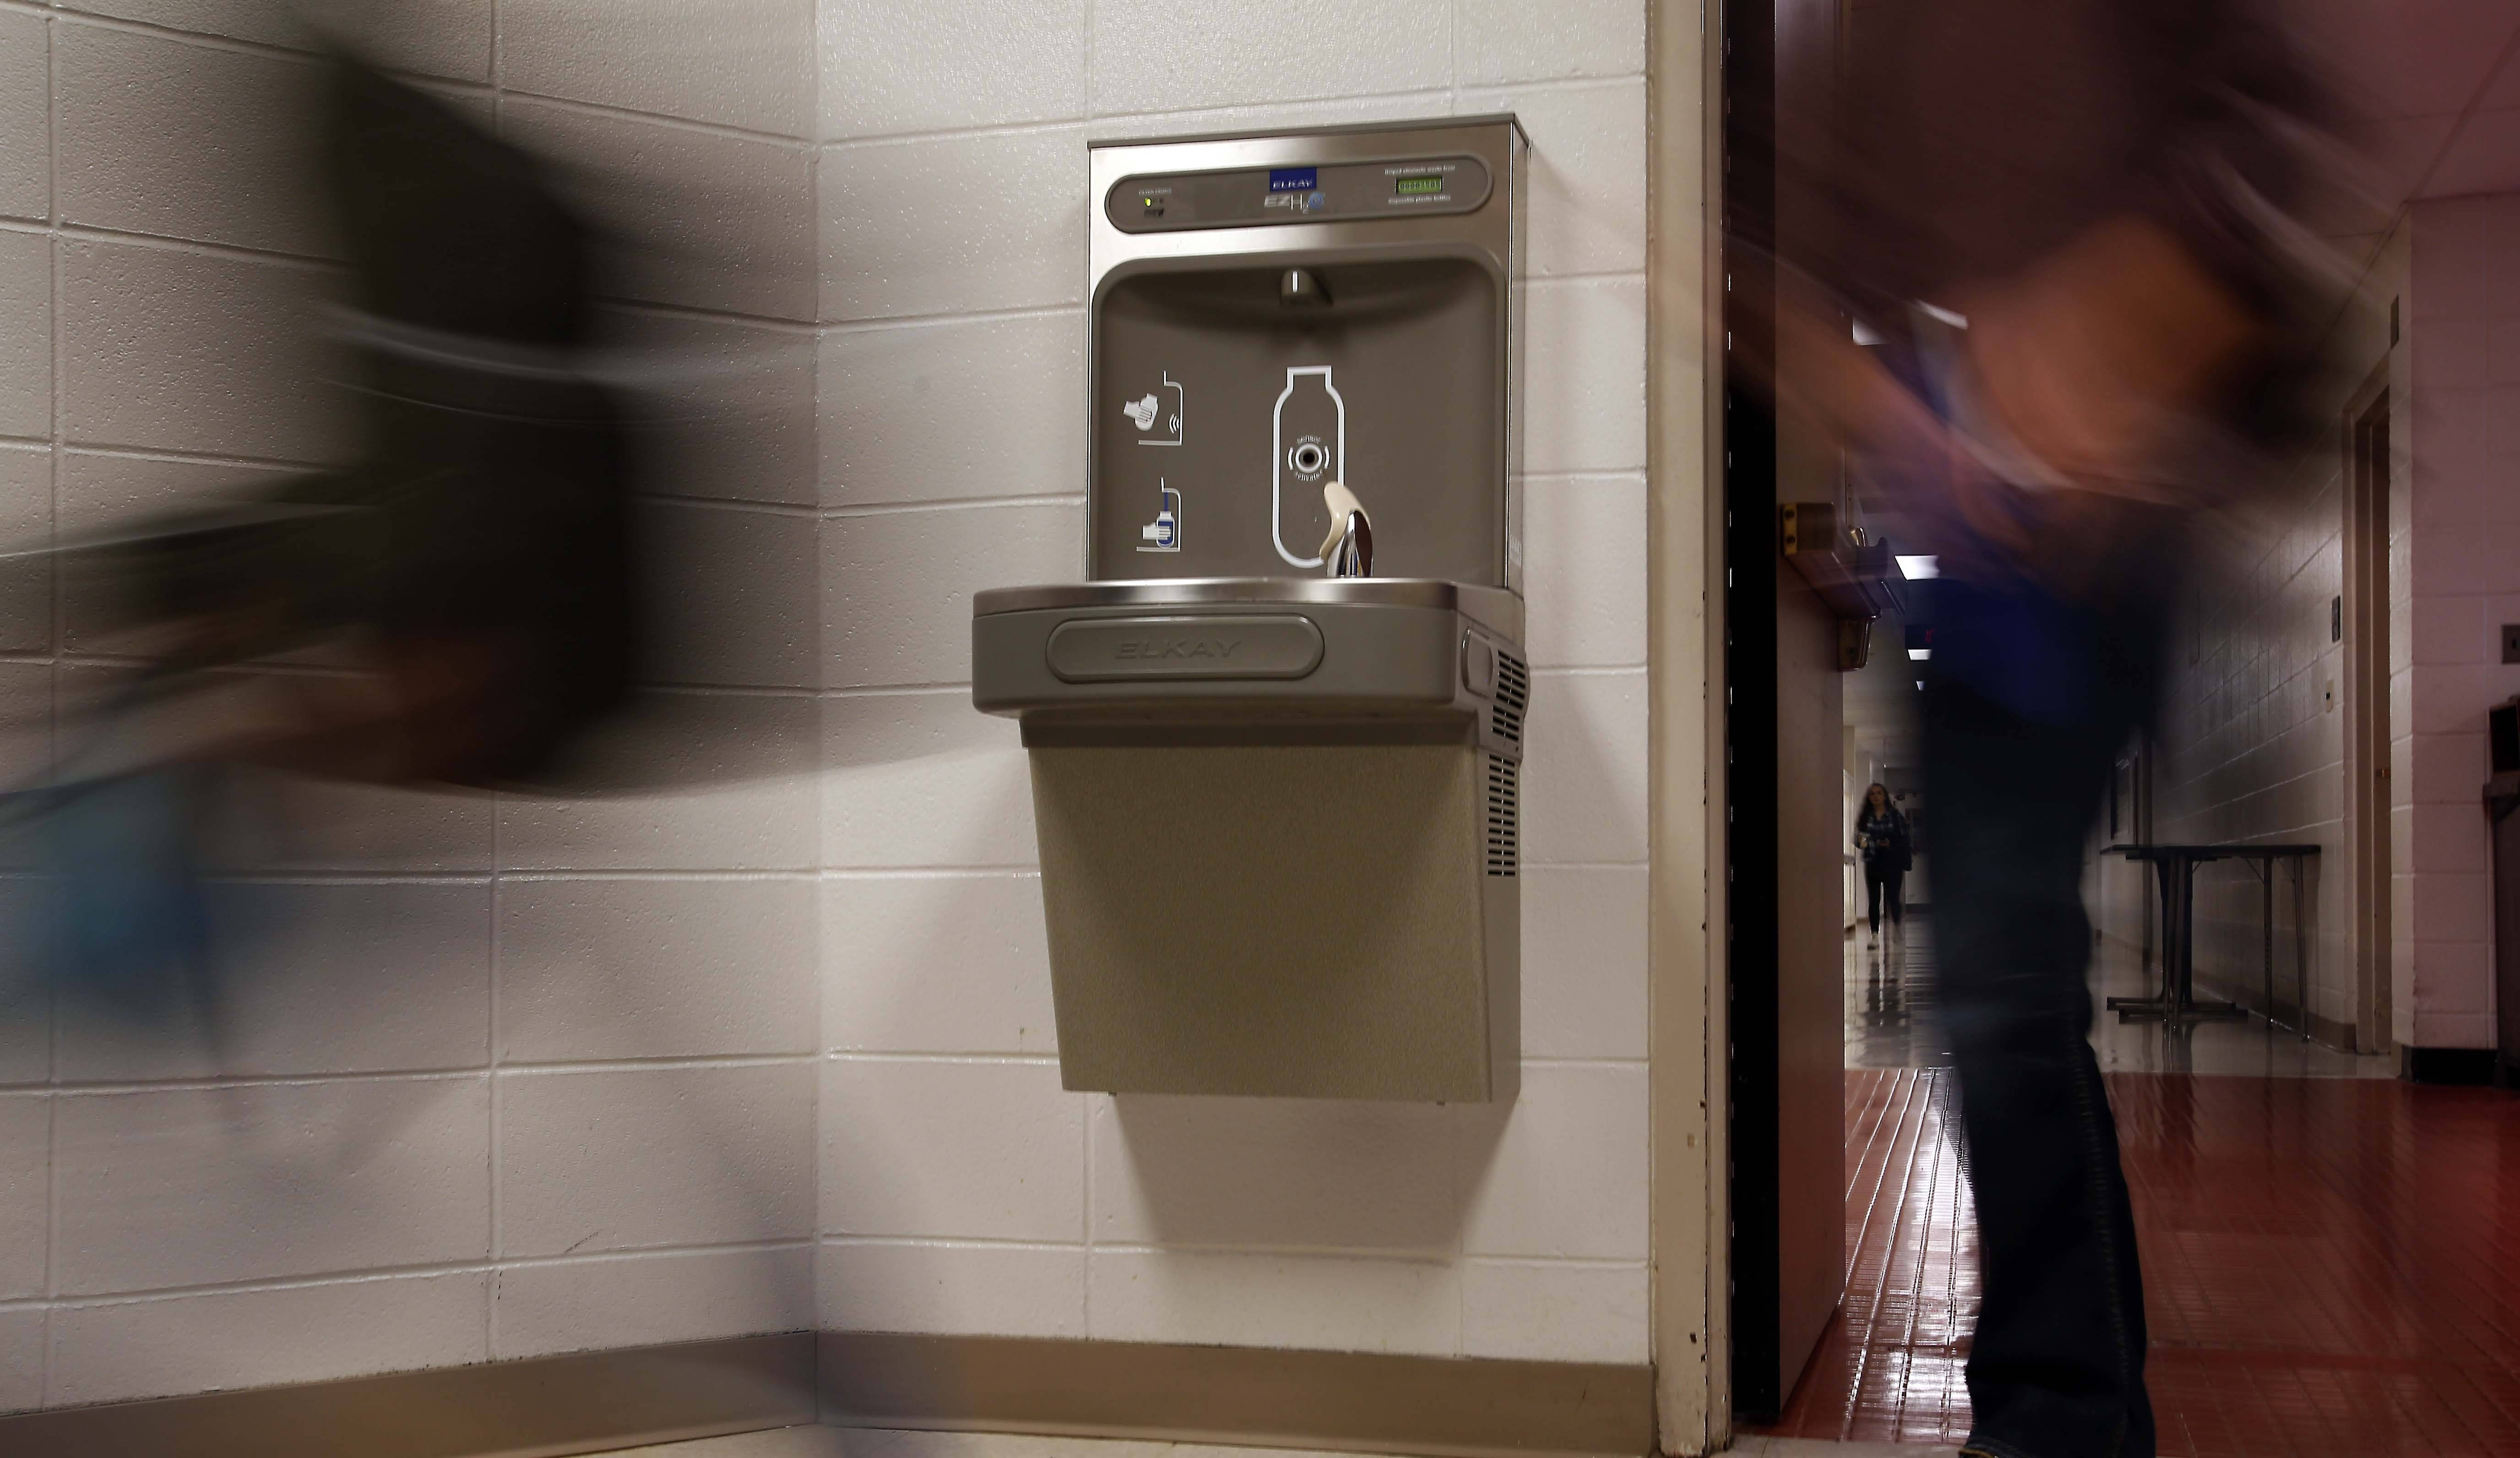 A bill requiring lead testing of drinking water at all Illinois schools and licensed child-care facilities is being considered by legislators and could go to Gov. Bruce Rauner's desk Tuesday.